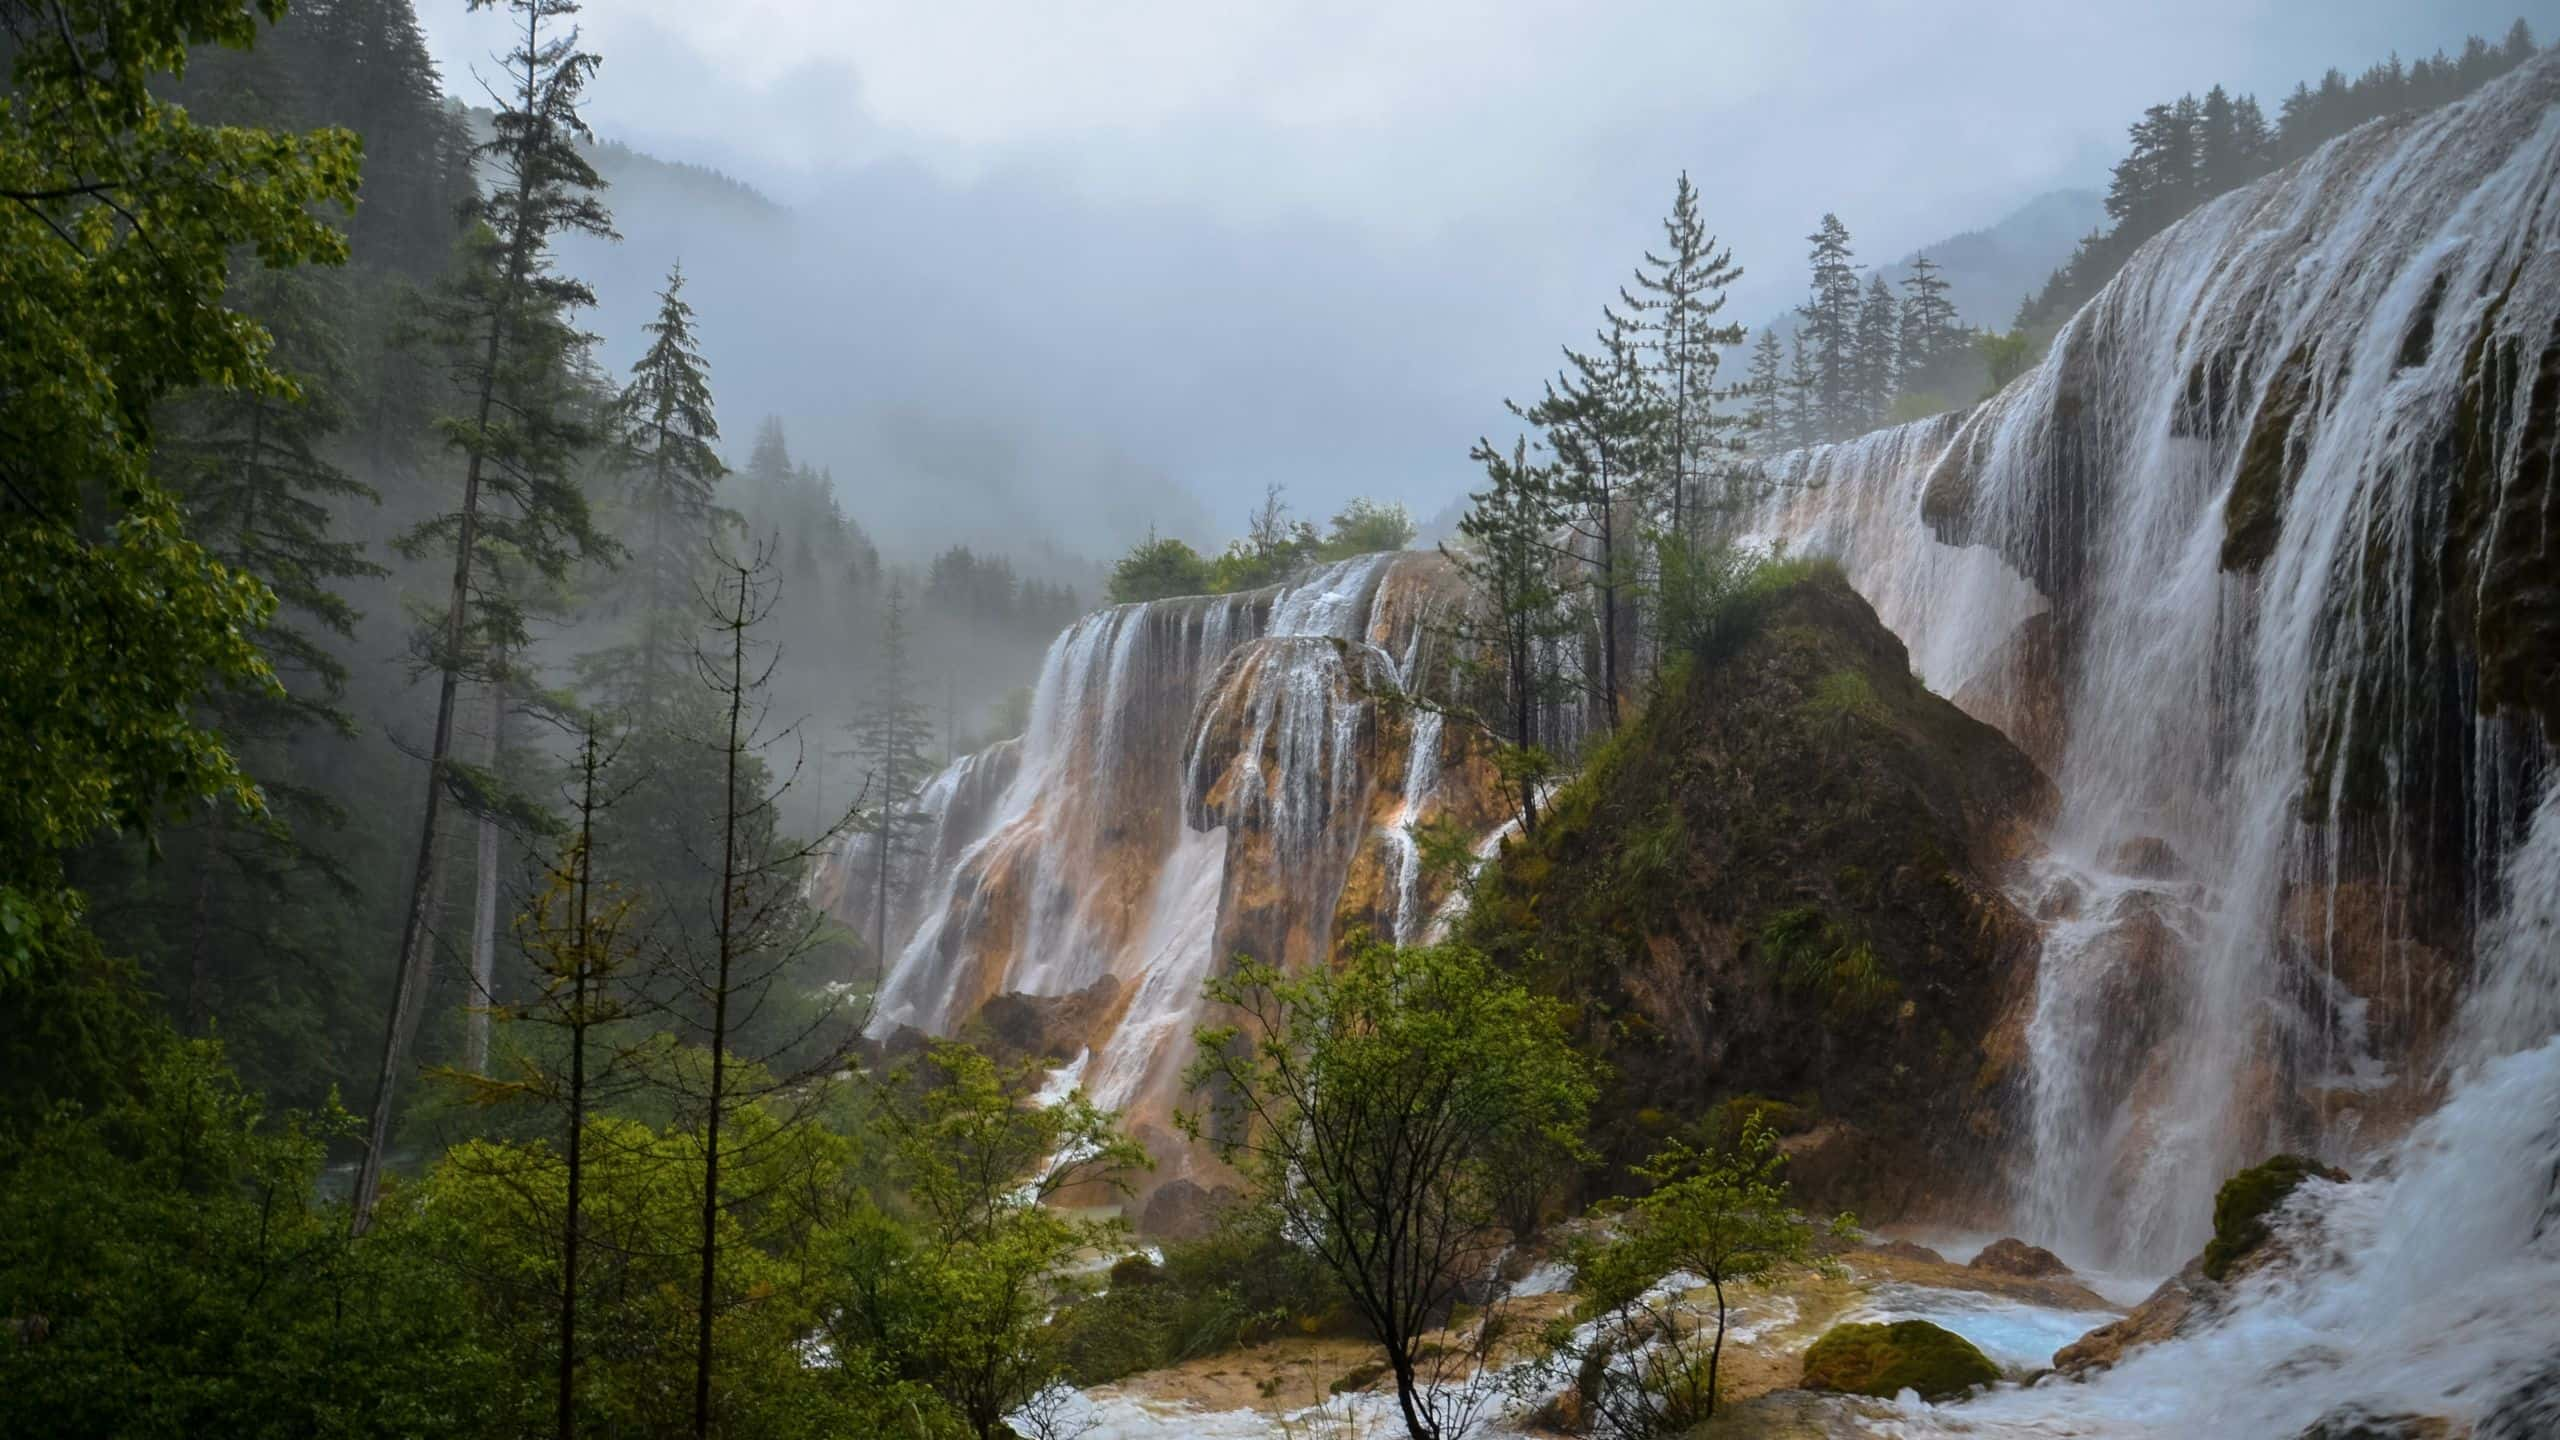 Impressive waterfalls at Aba, Sichuan